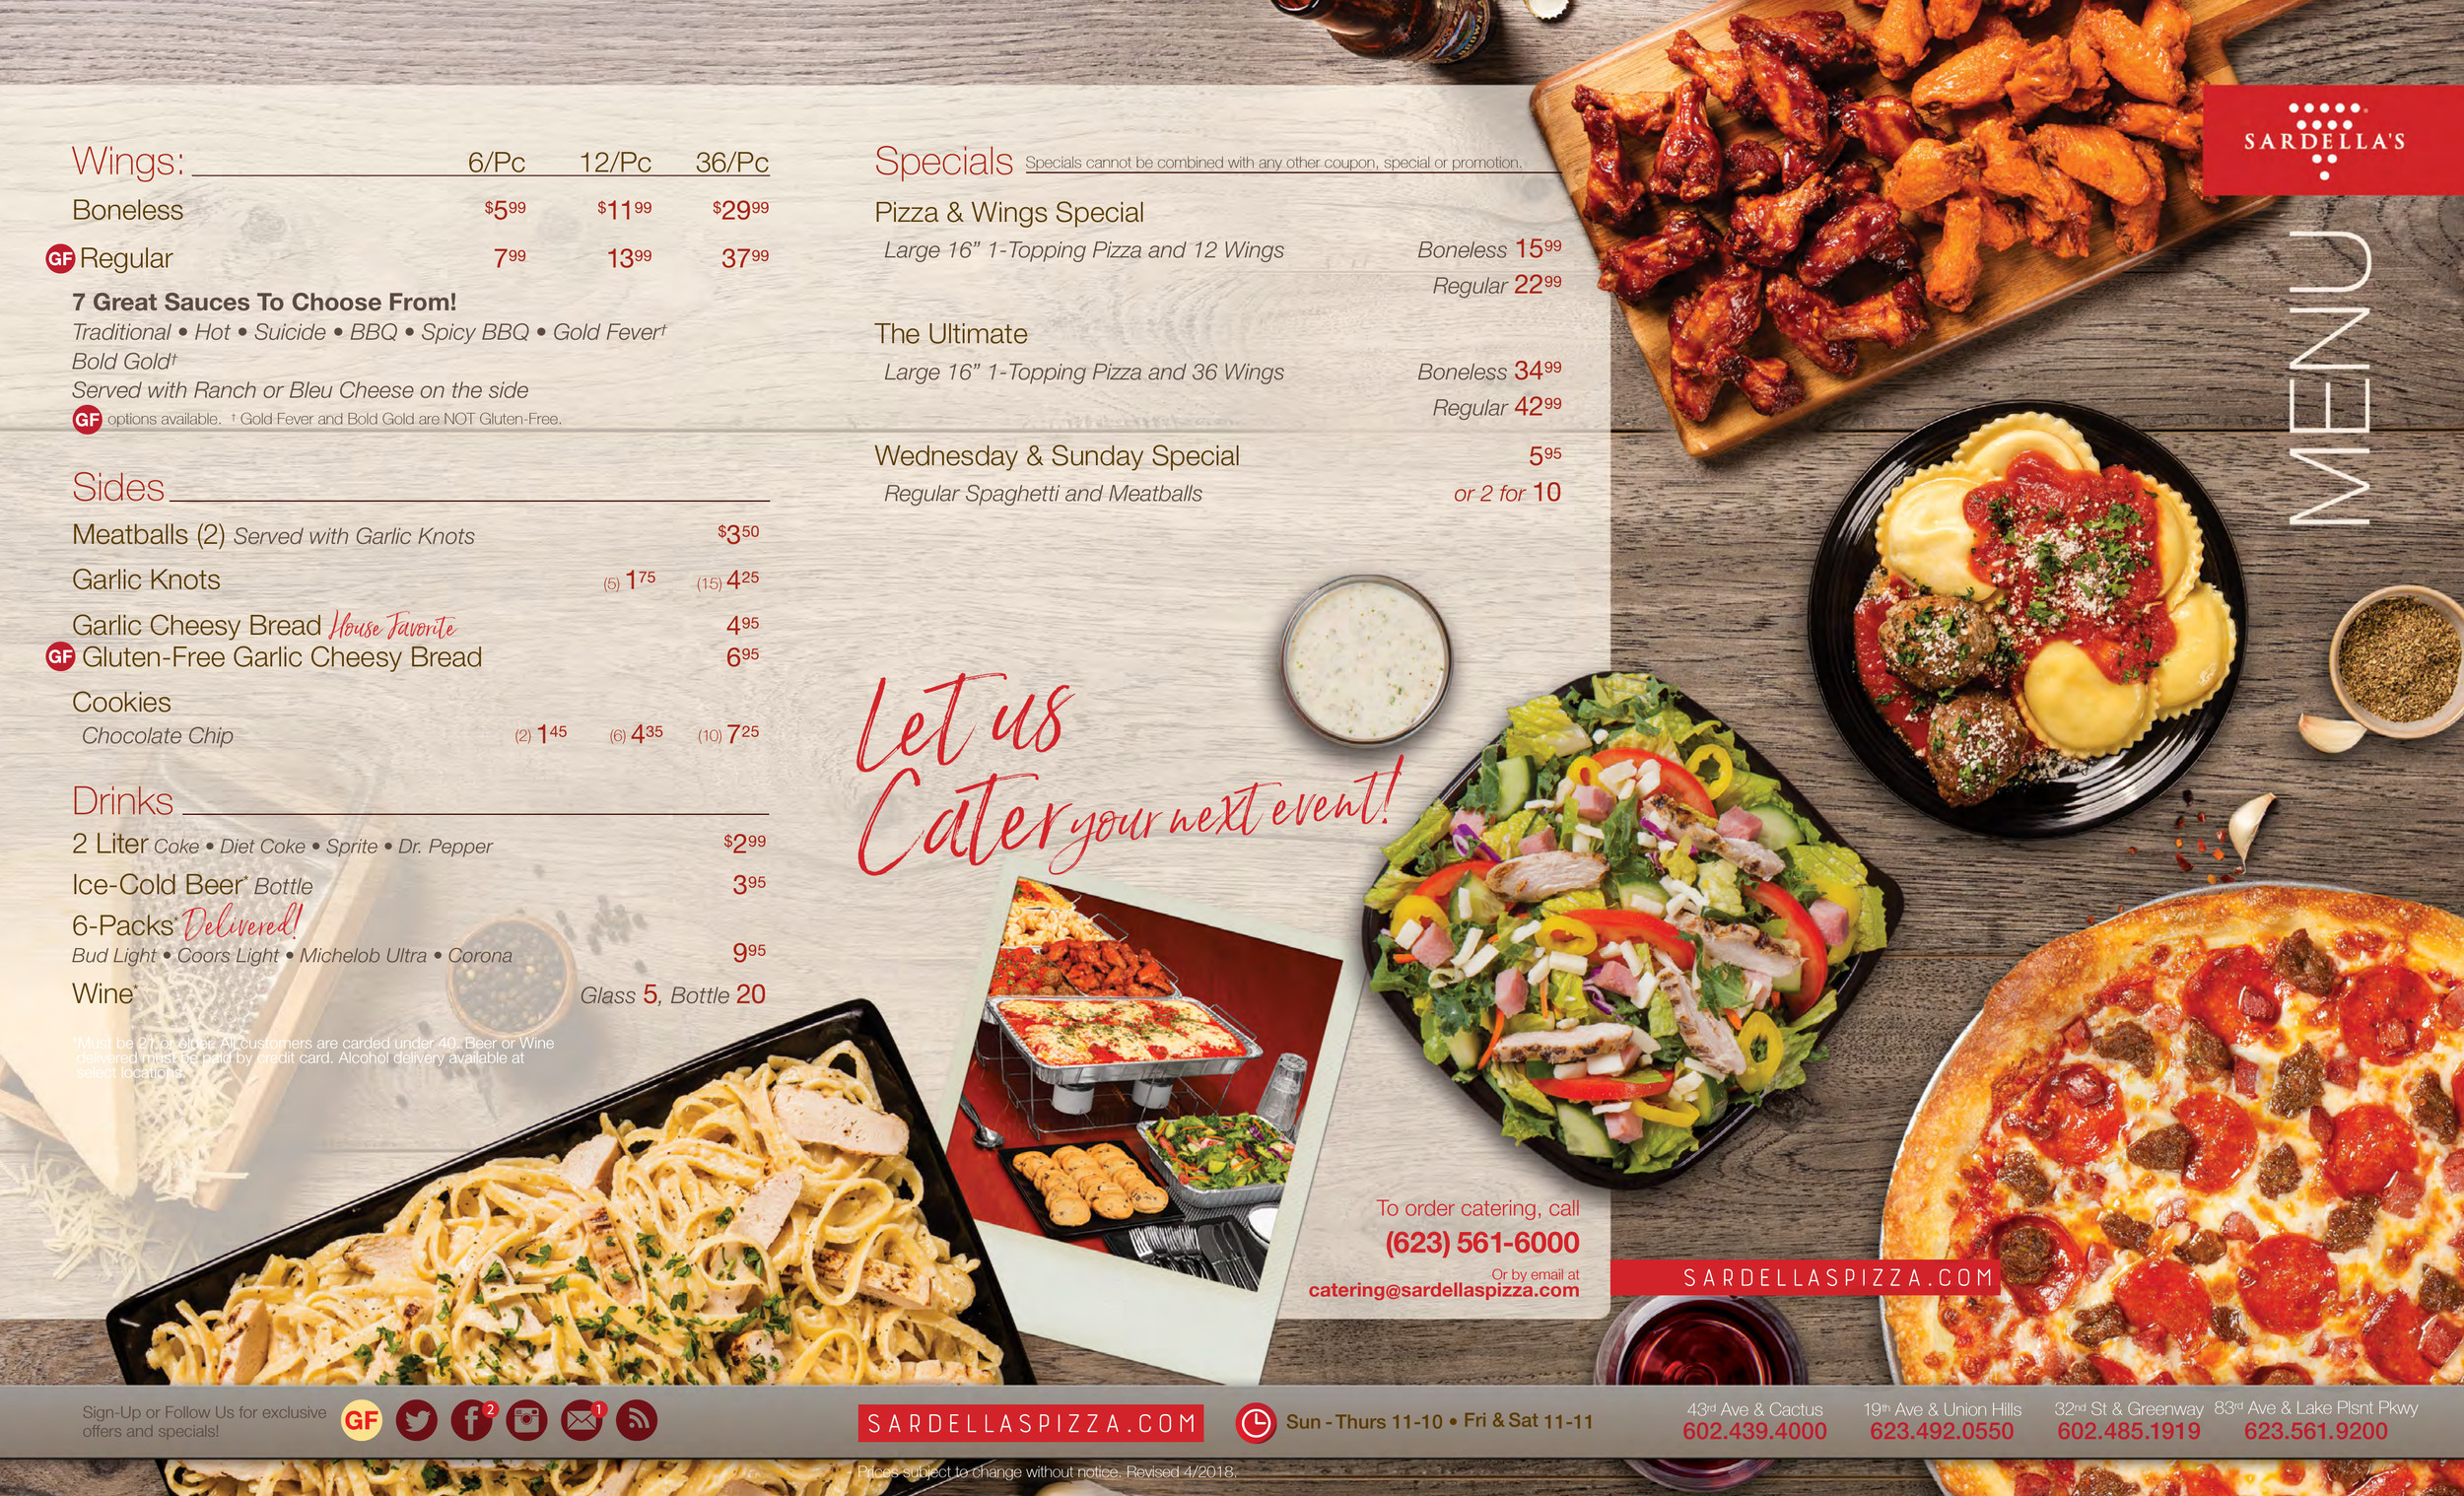 Stupendous Menu For Sardellas Pizza Wings In Phoenix Arizona Home Interior And Landscaping Elinuenasavecom